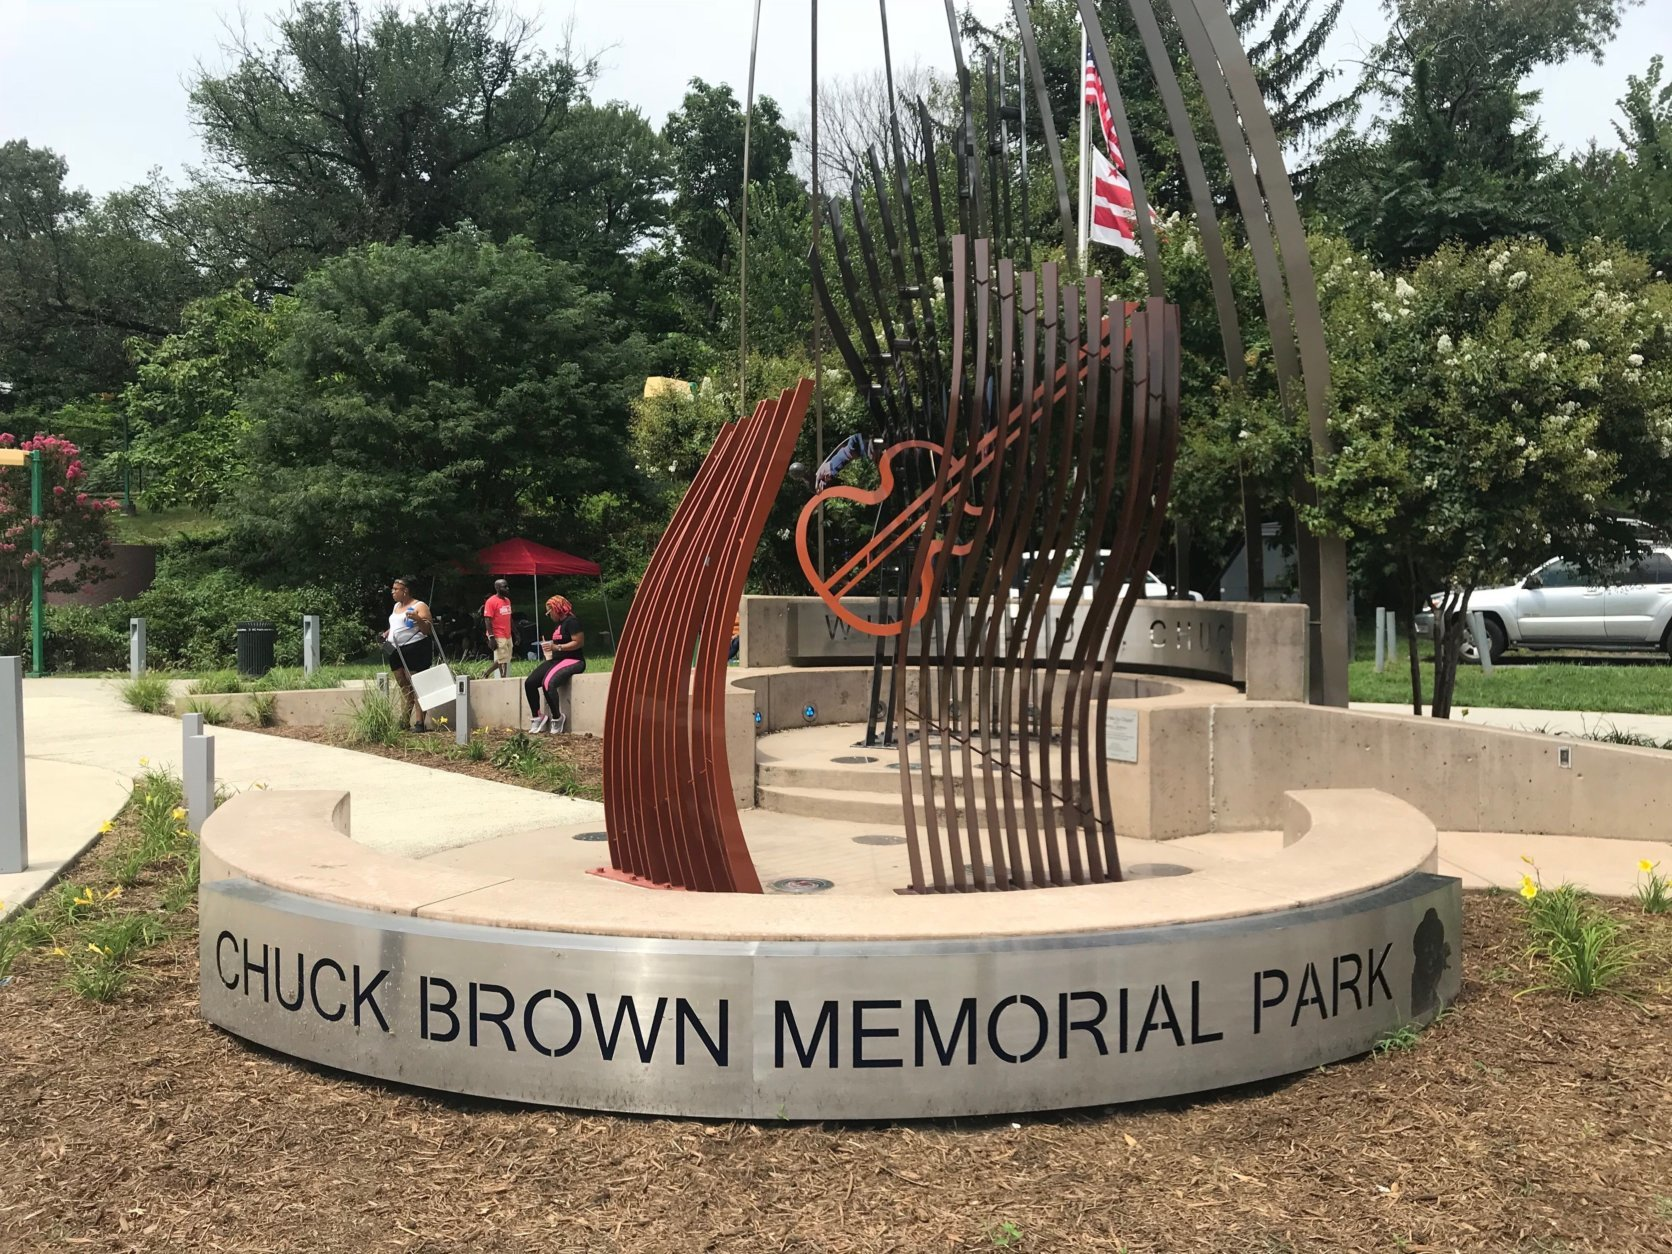 The District saluted one of its most beloved musicians at the park and on the day that bears his name: Chuck Brown Day at Chuck Brown Memorial Park in Northeast D.C. (WTOP/Dick Uliano)